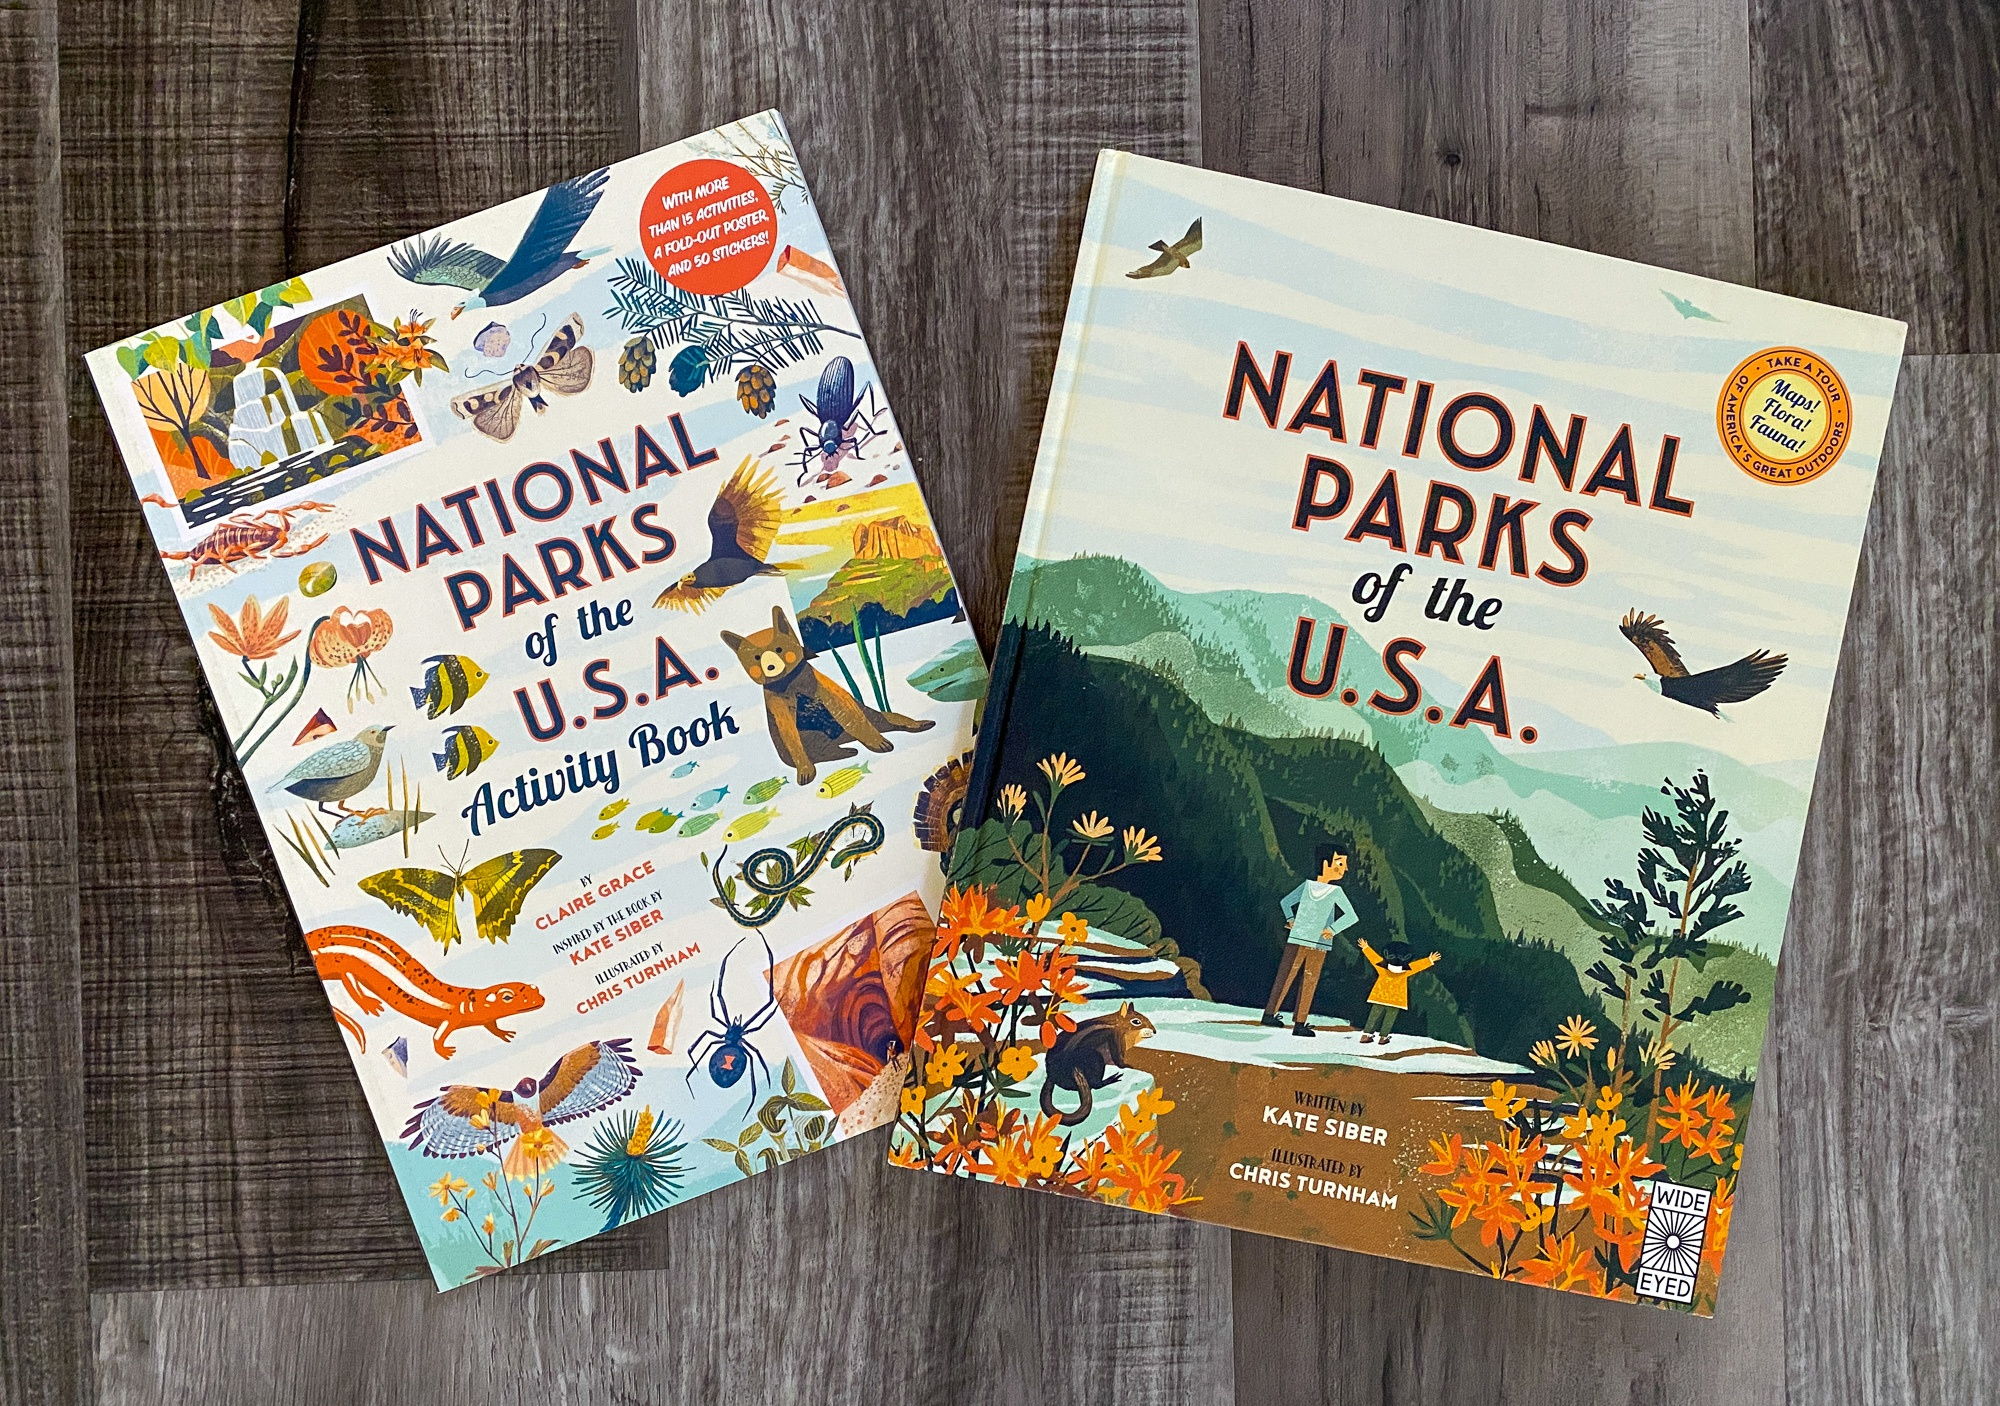 Explore the best national parks for kids with National Parks of the USA and National Parks of the USA Activity Book by Quarto Books